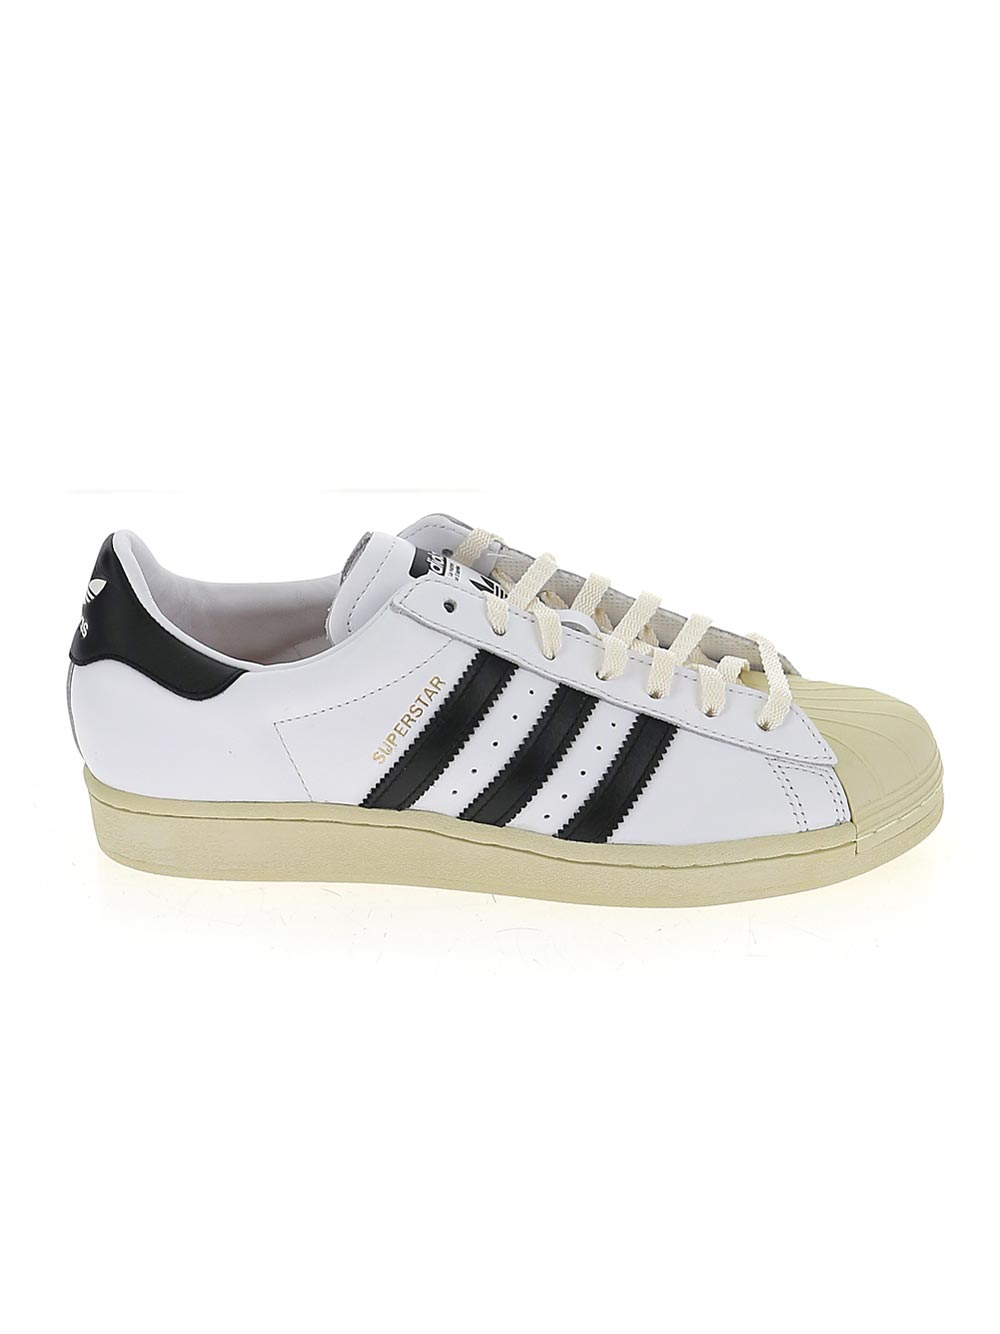 Adidas Originals ADIDAS ORIGINALS SUPERSTAR SNEAKERS